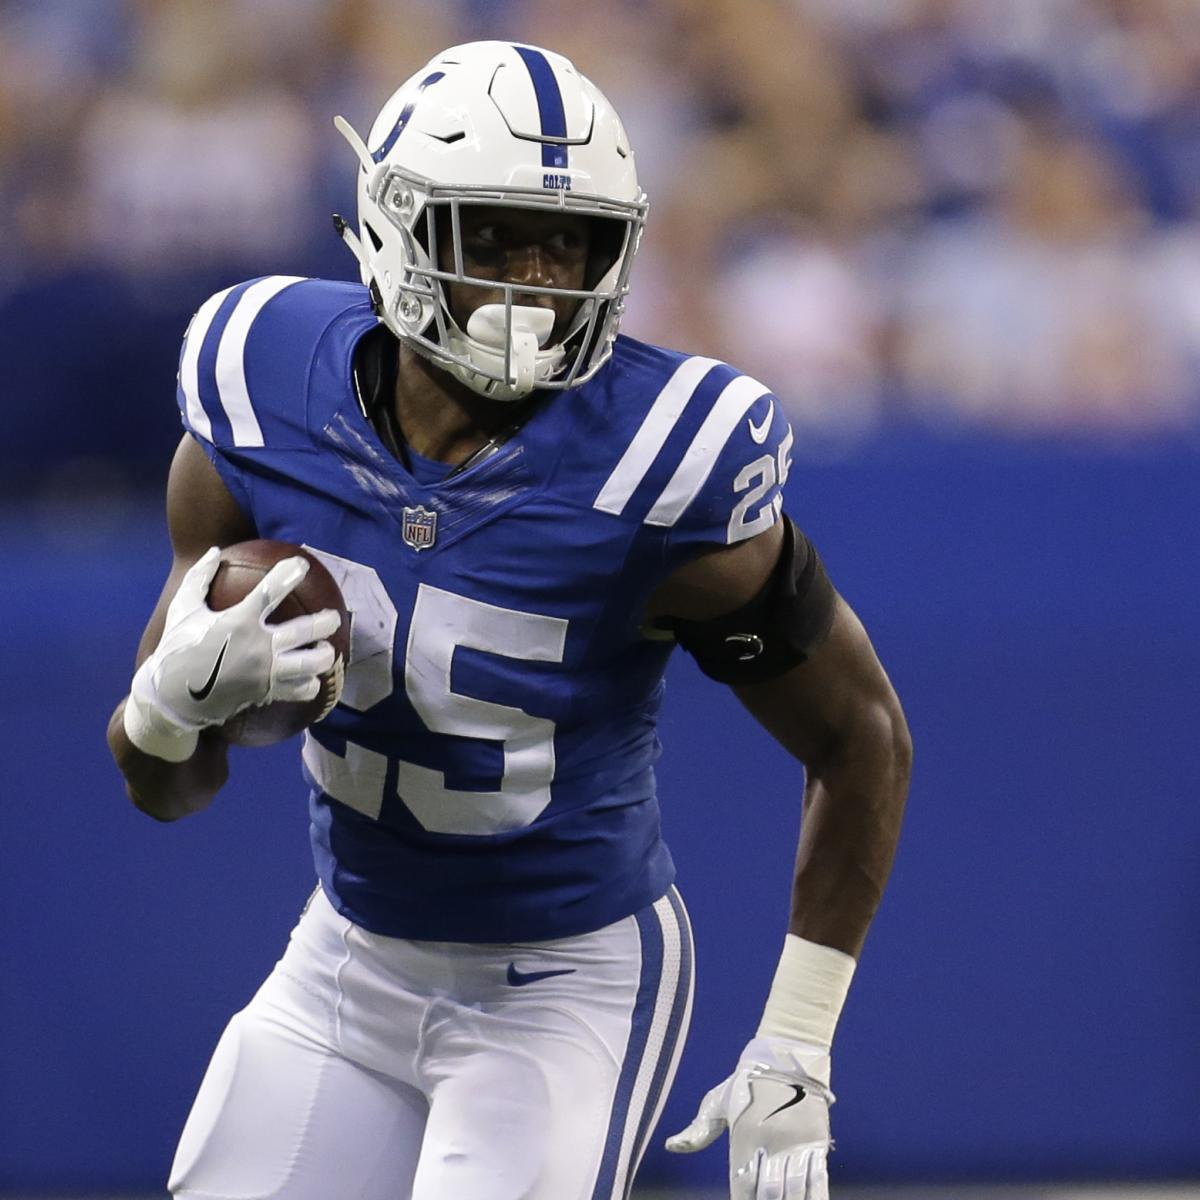 marlon mack out for week 5 vs patriots due to hamstring